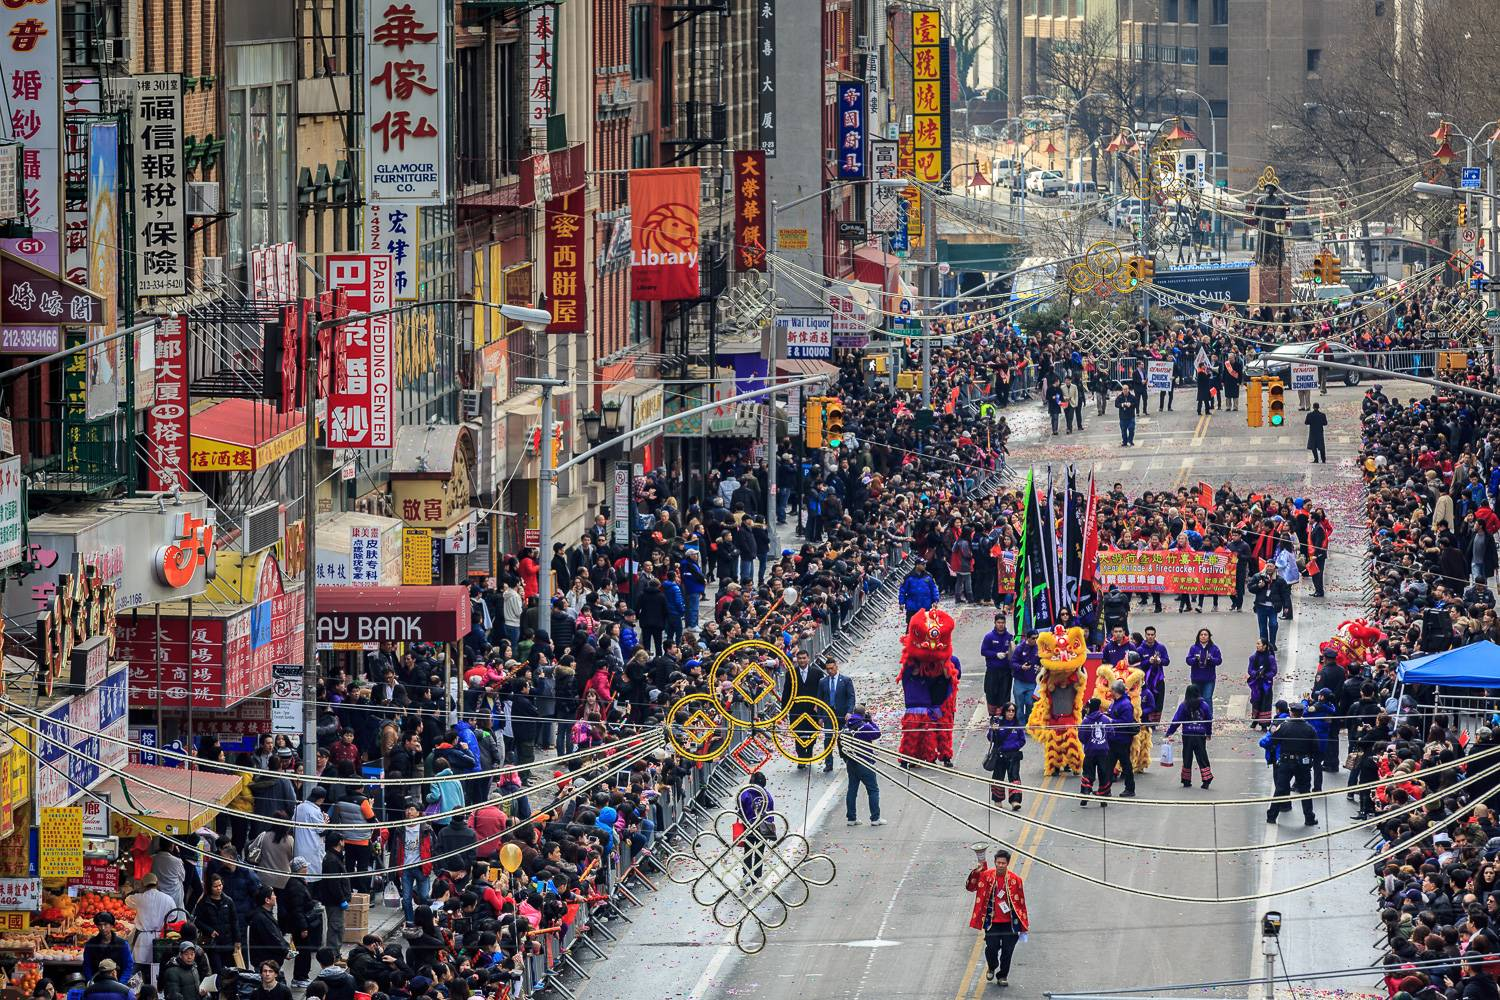 Aerial view of a Chinatown street with a parade for Chinese New Year with signs in Chinese characters